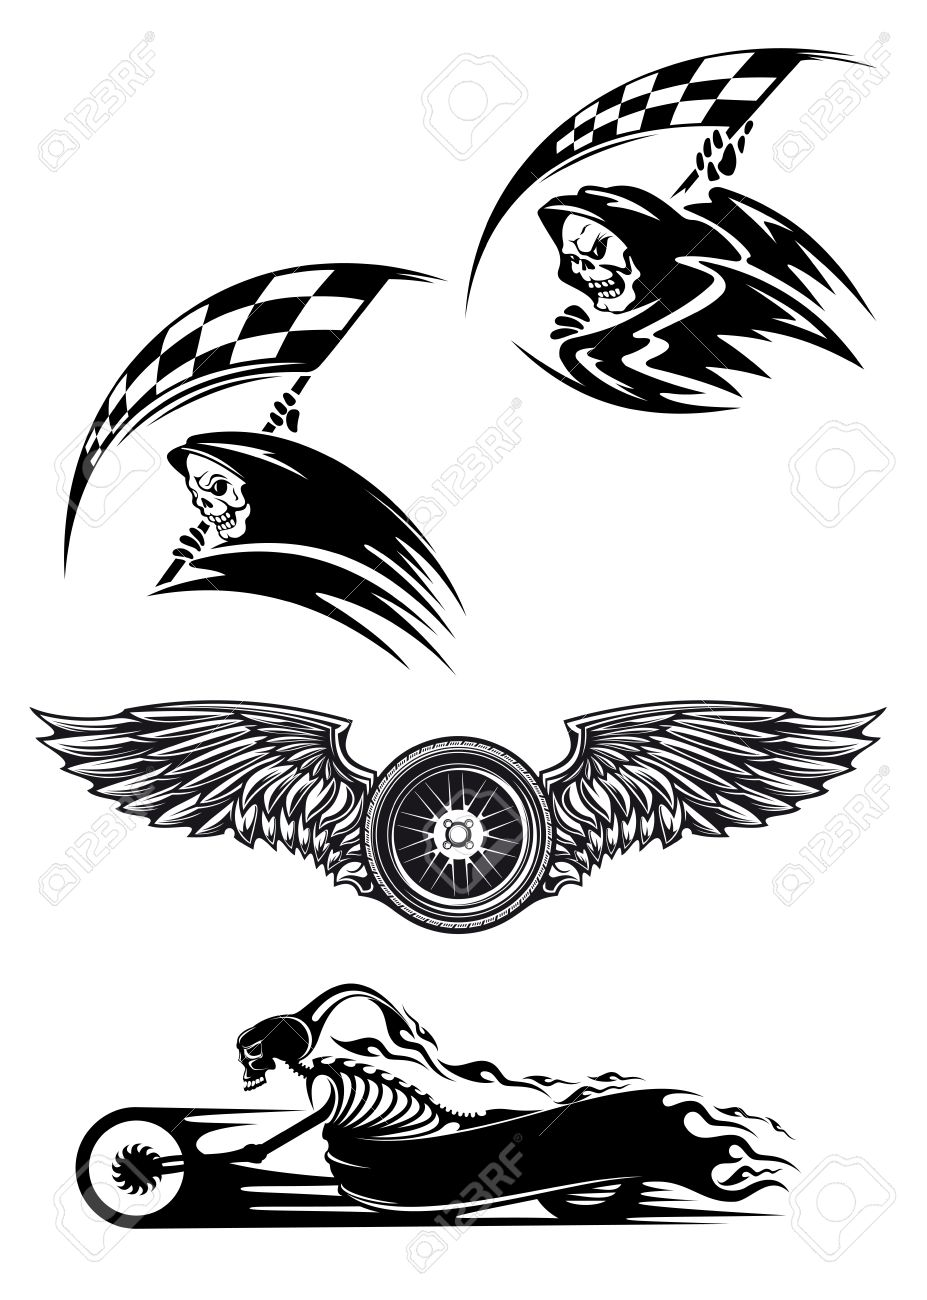 Tribal Motocross Mascot Or Tattoo Design With Skeleton On Motorcycle